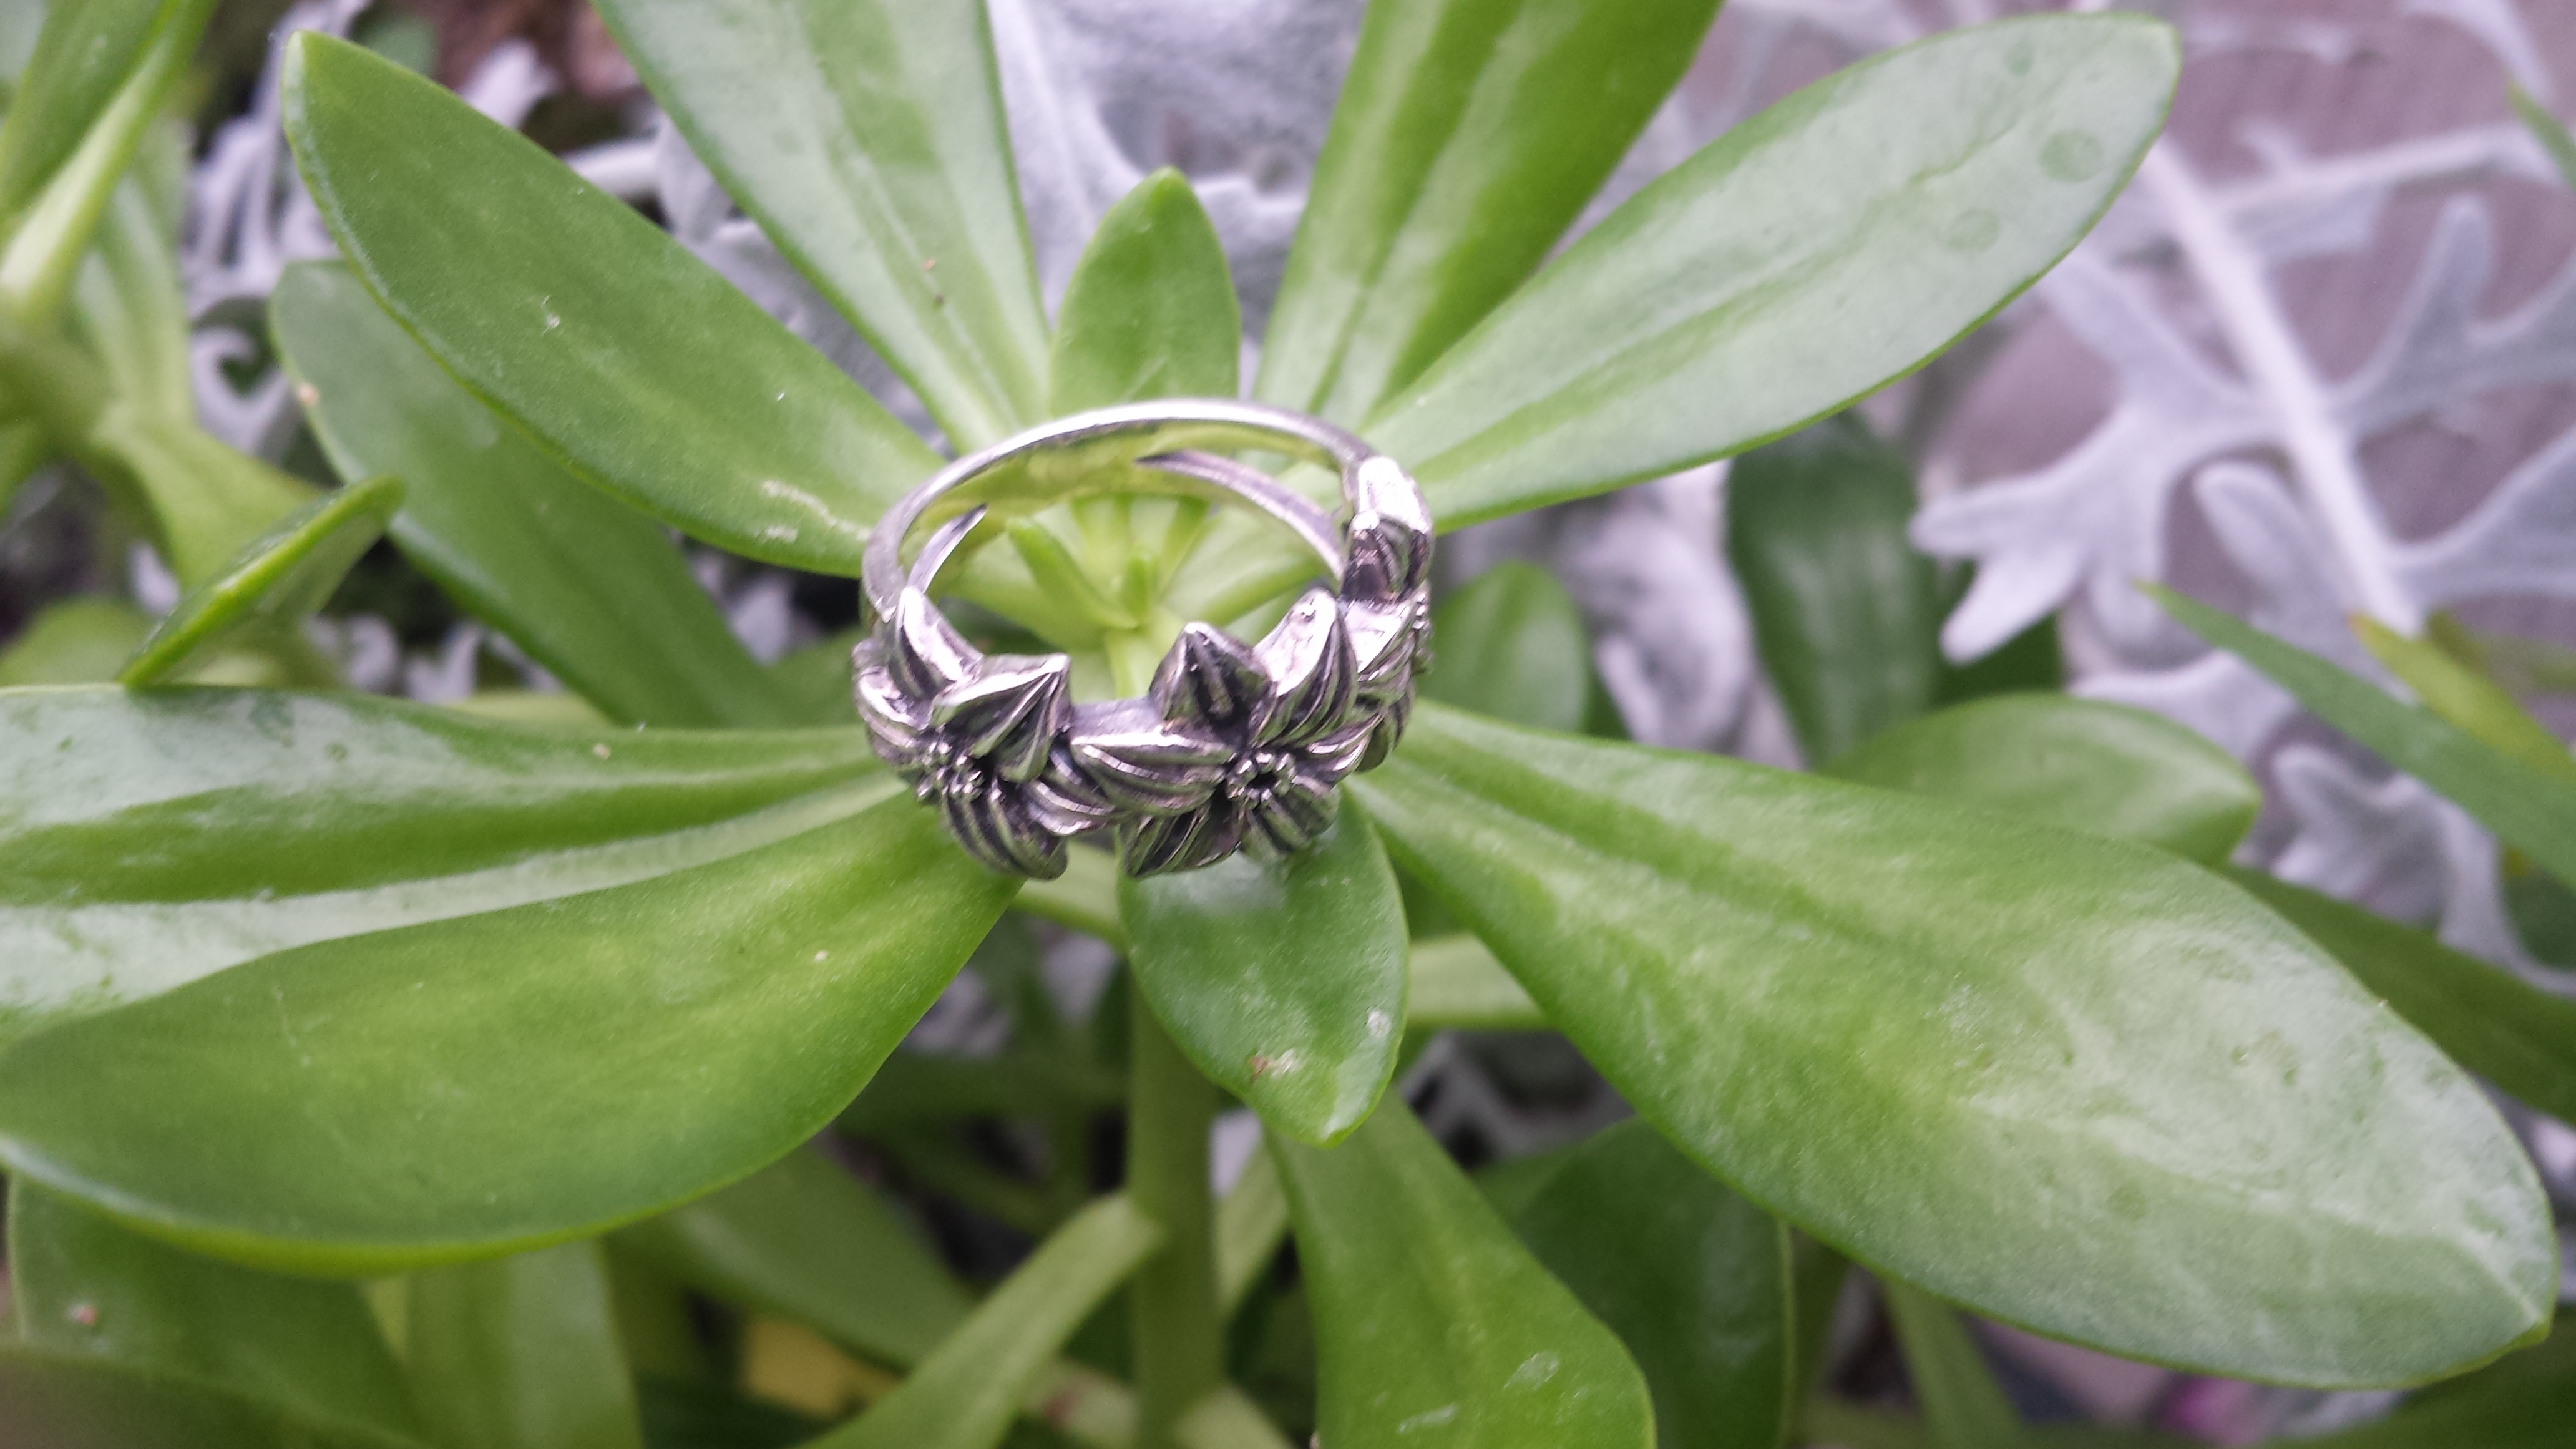 SUPERB FLOWERS RING FOR WOMEN WITH 925 STERLING SILVER. 6 G.